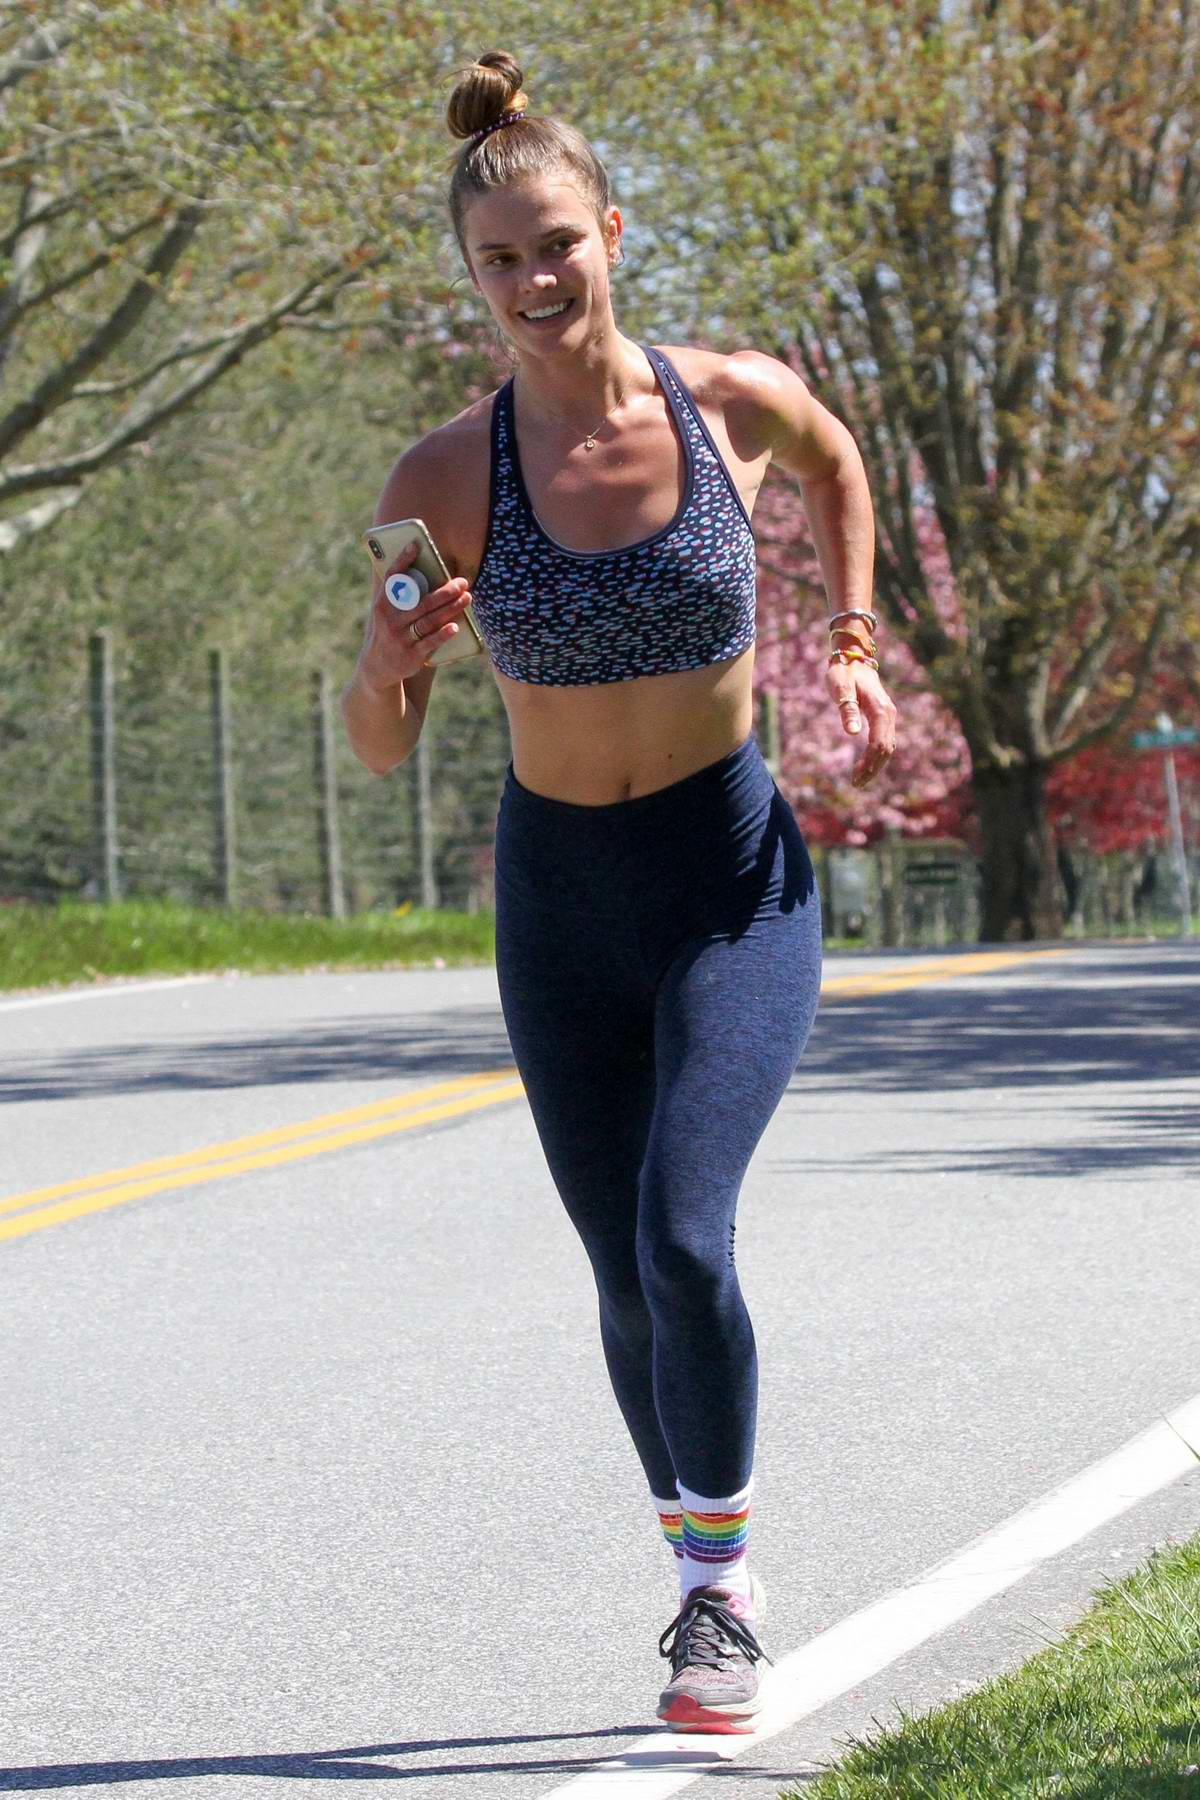 Nina Agdal shows off her fit figure in a crop top and leggings while out for a run in The Hamptons, New York